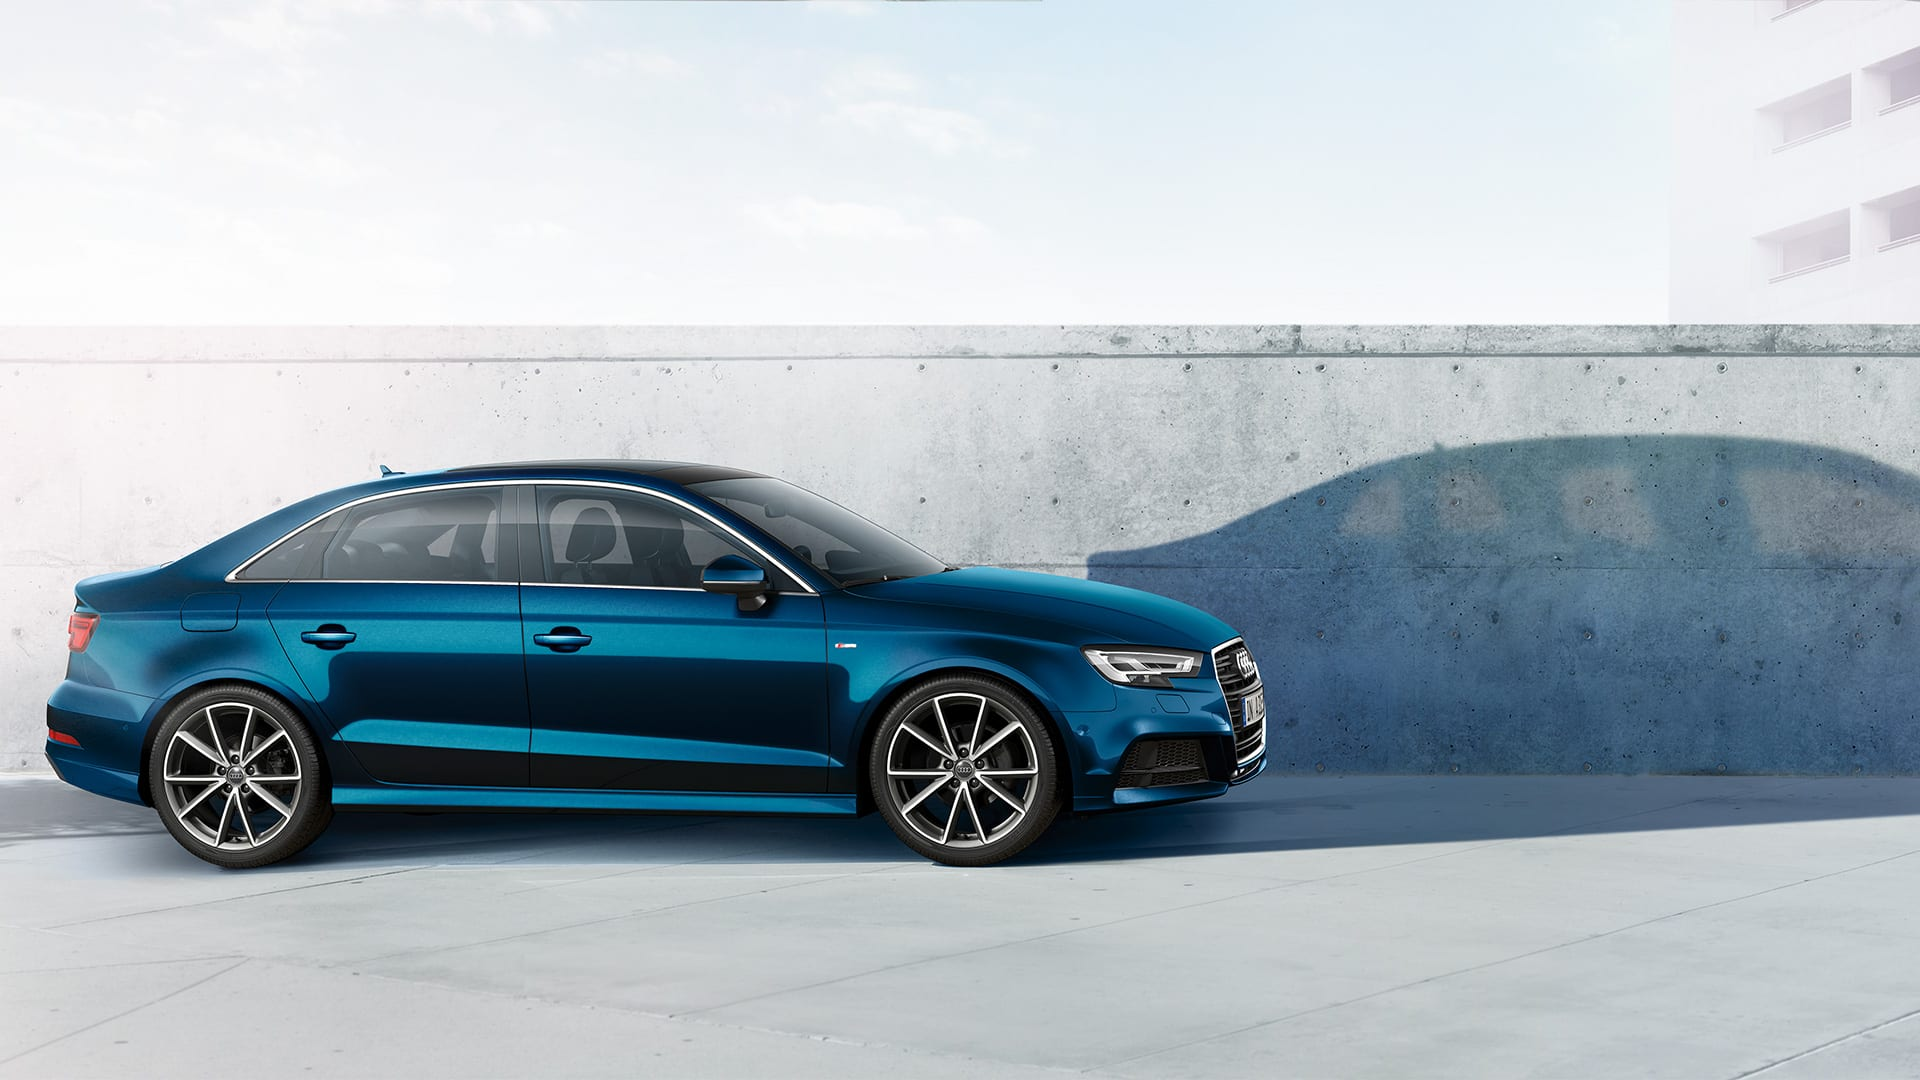 audi a3 sedan compact sports sedan audi australia audi australia official website luxury. Black Bedroom Furniture Sets. Home Design Ideas